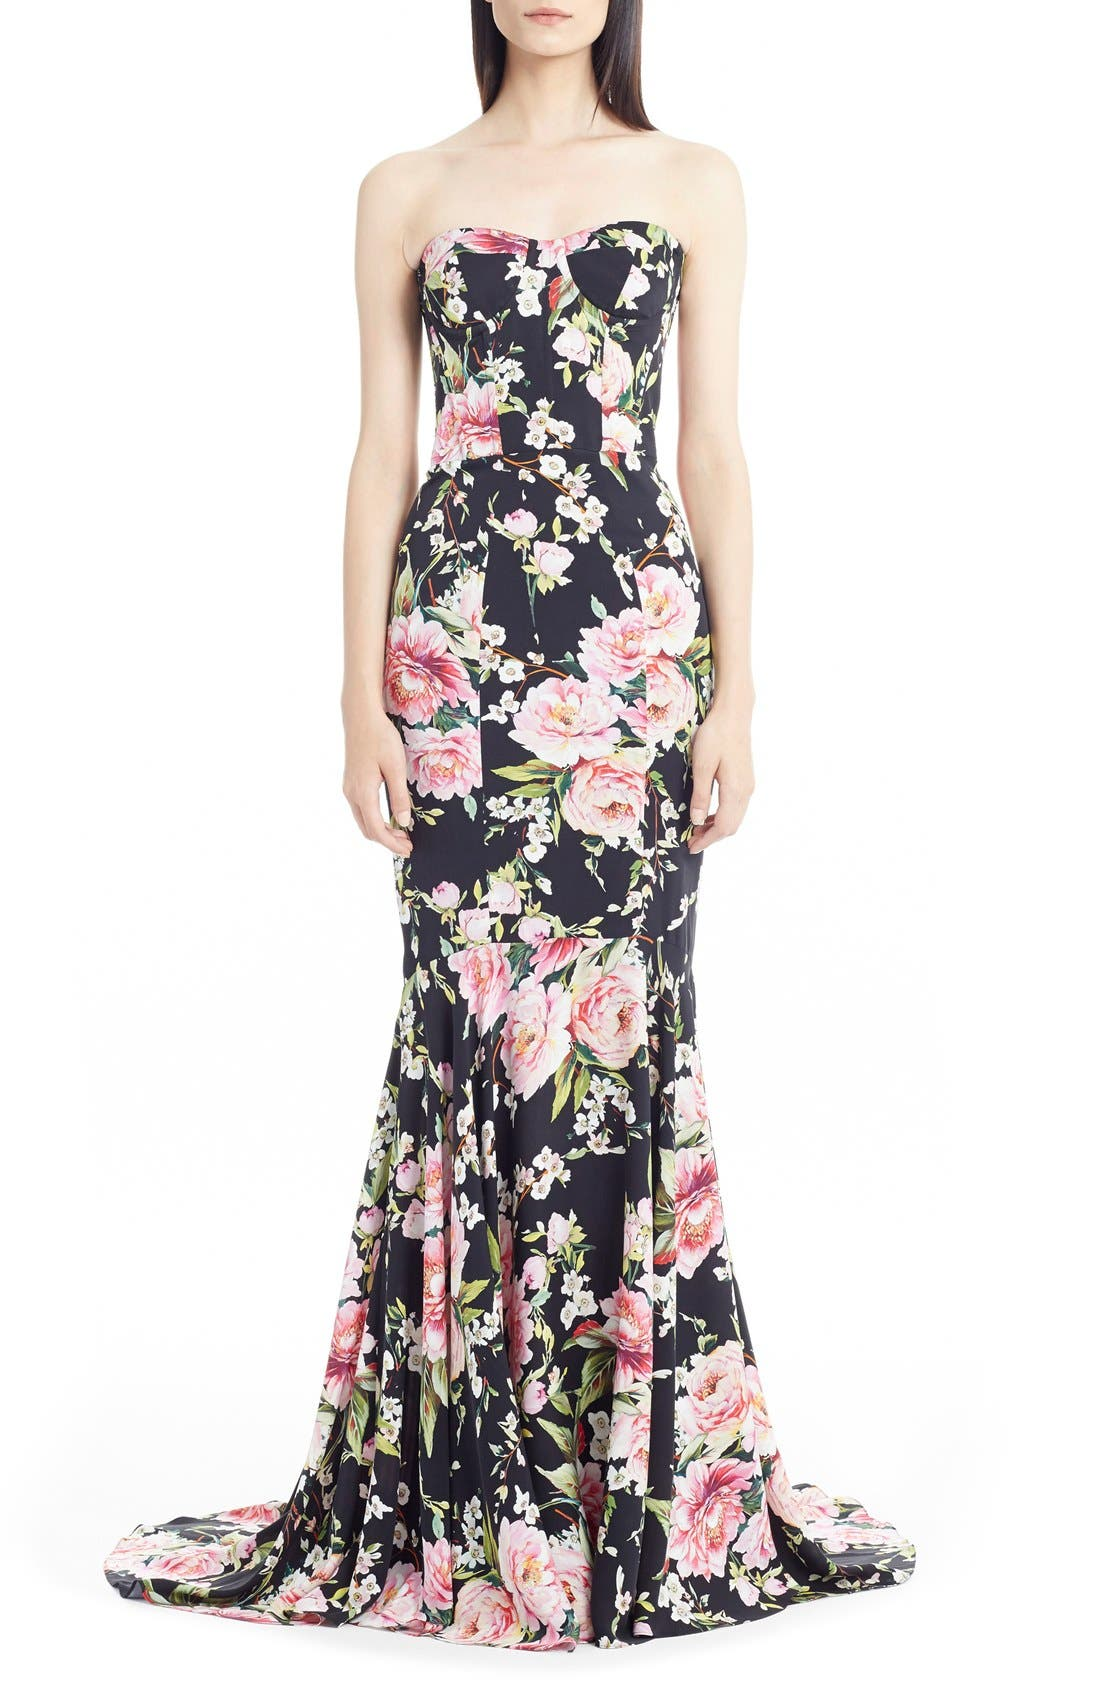 Main Image - Dolce&Gabbana Floral Print Strapless Charmeuse Gown